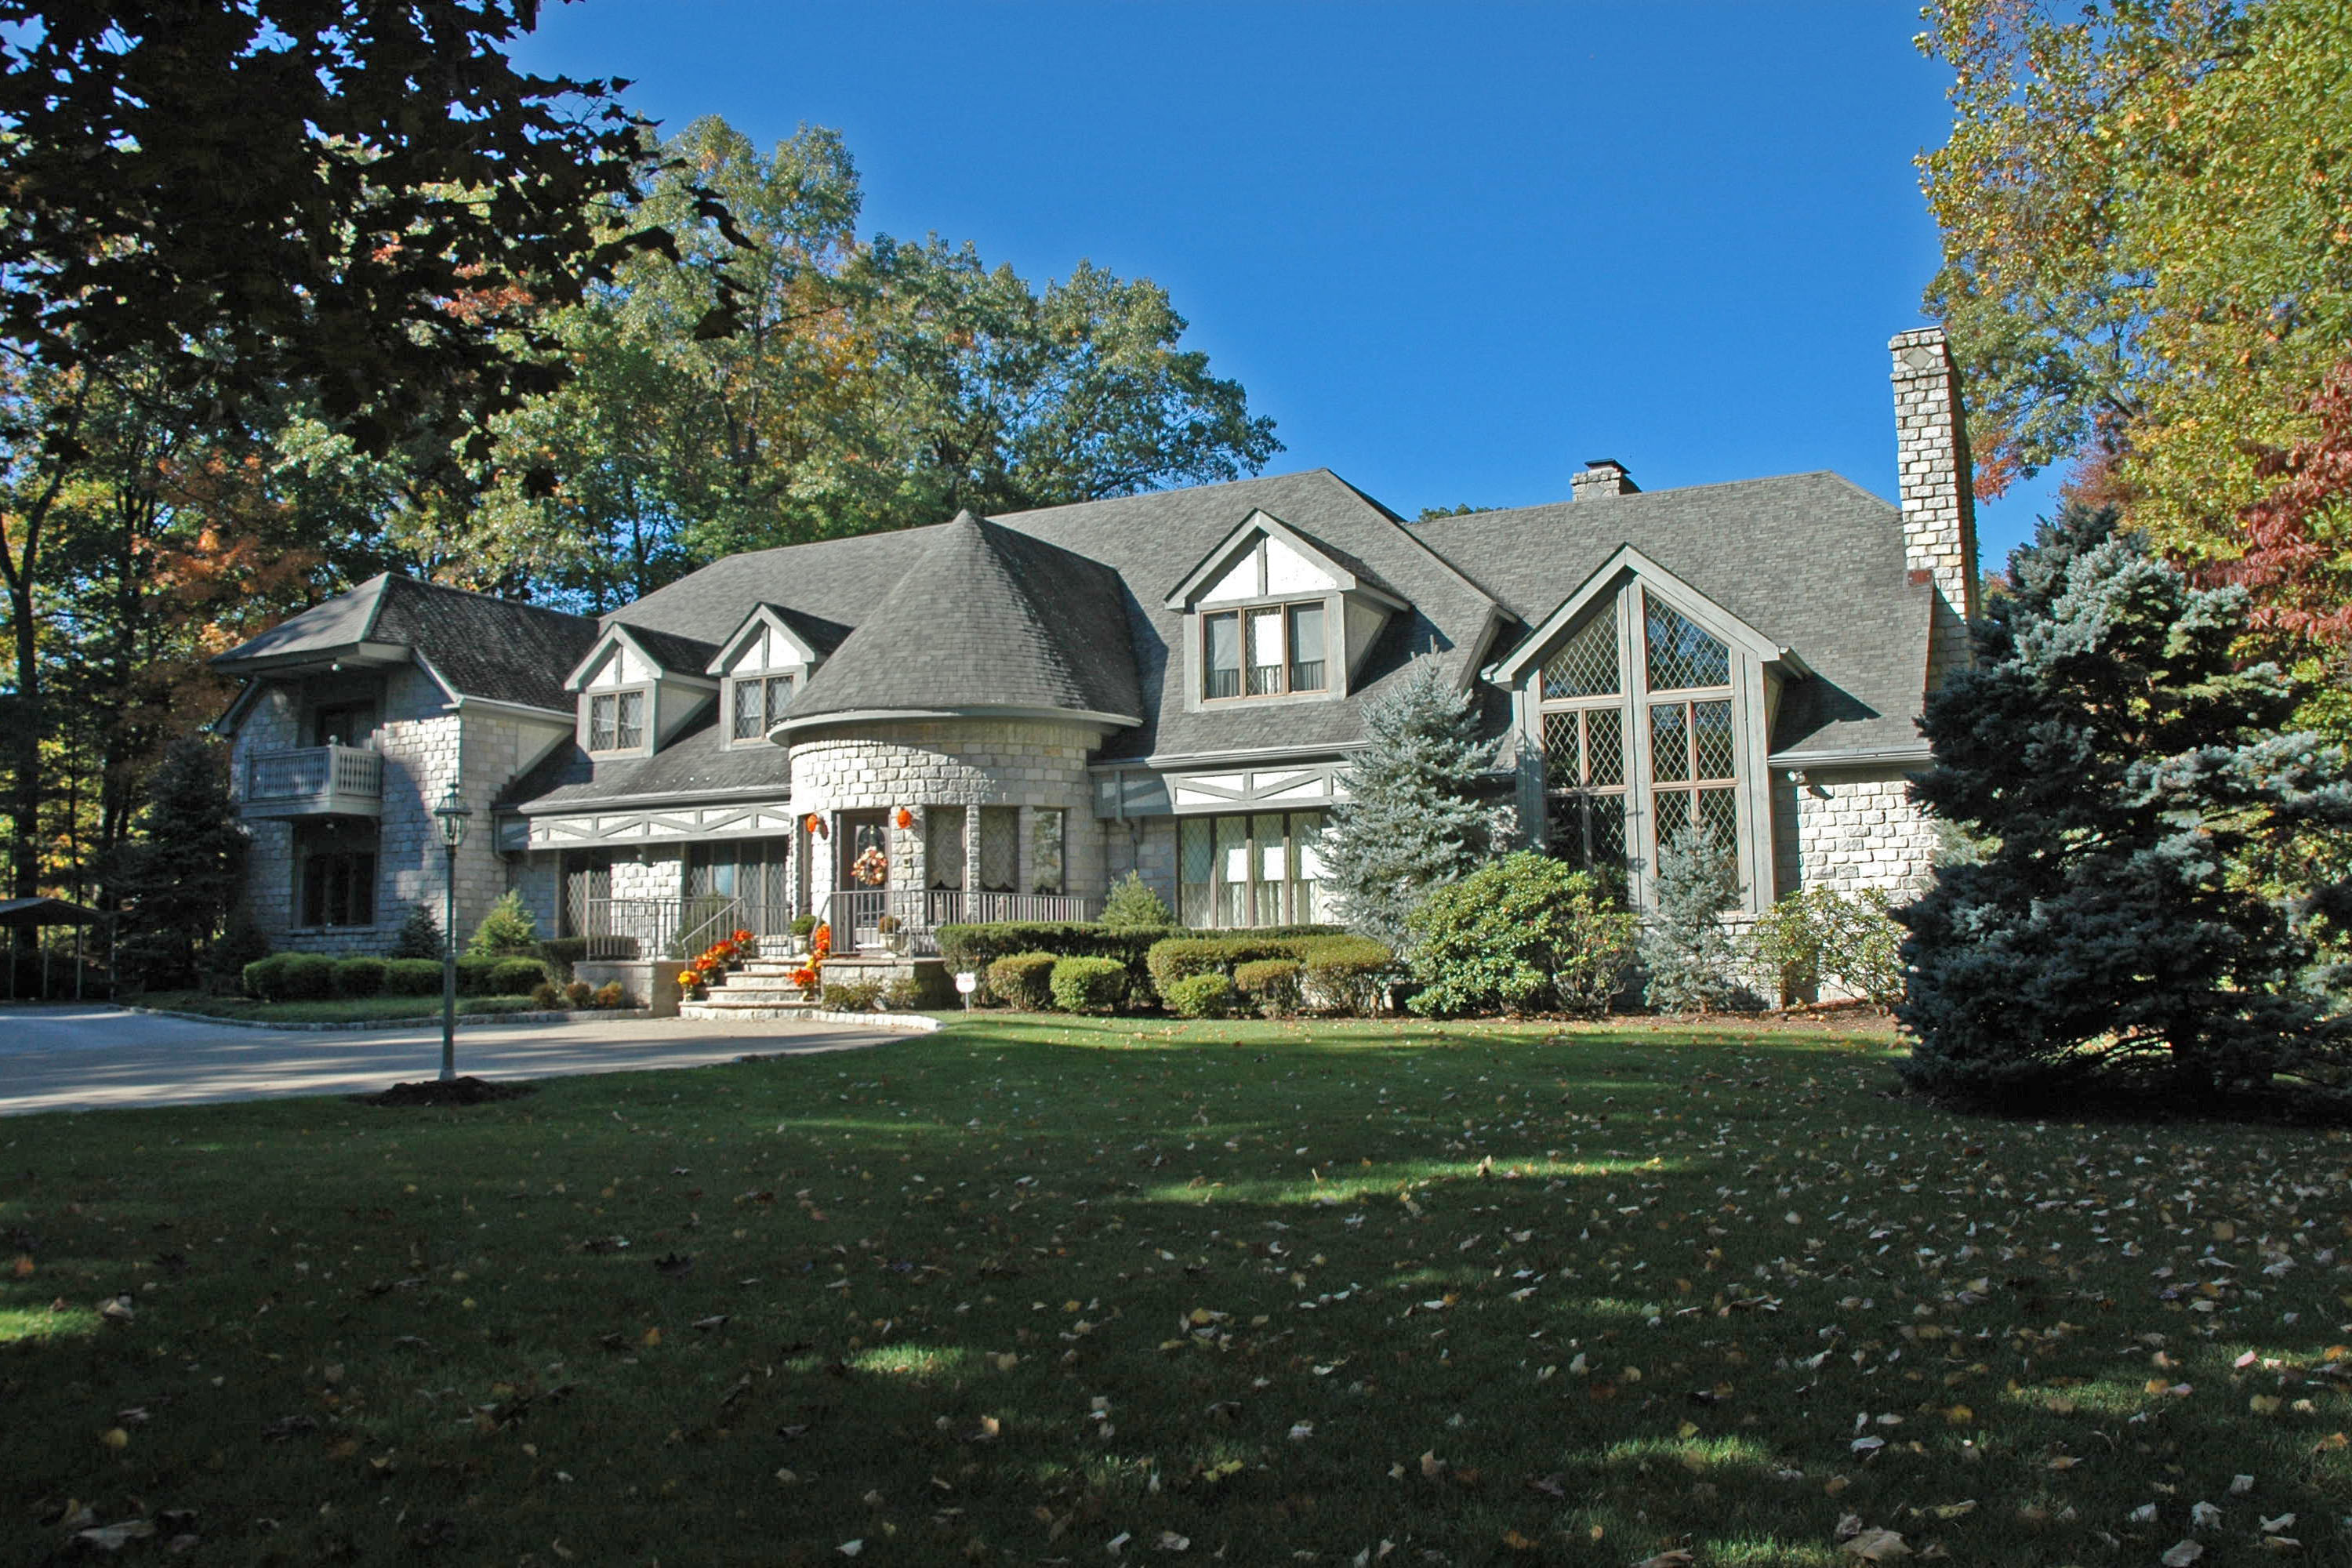 Single Family Home for Sale at French Normandy Estate 5 Country Squire Road Saddle River, 07458 United States